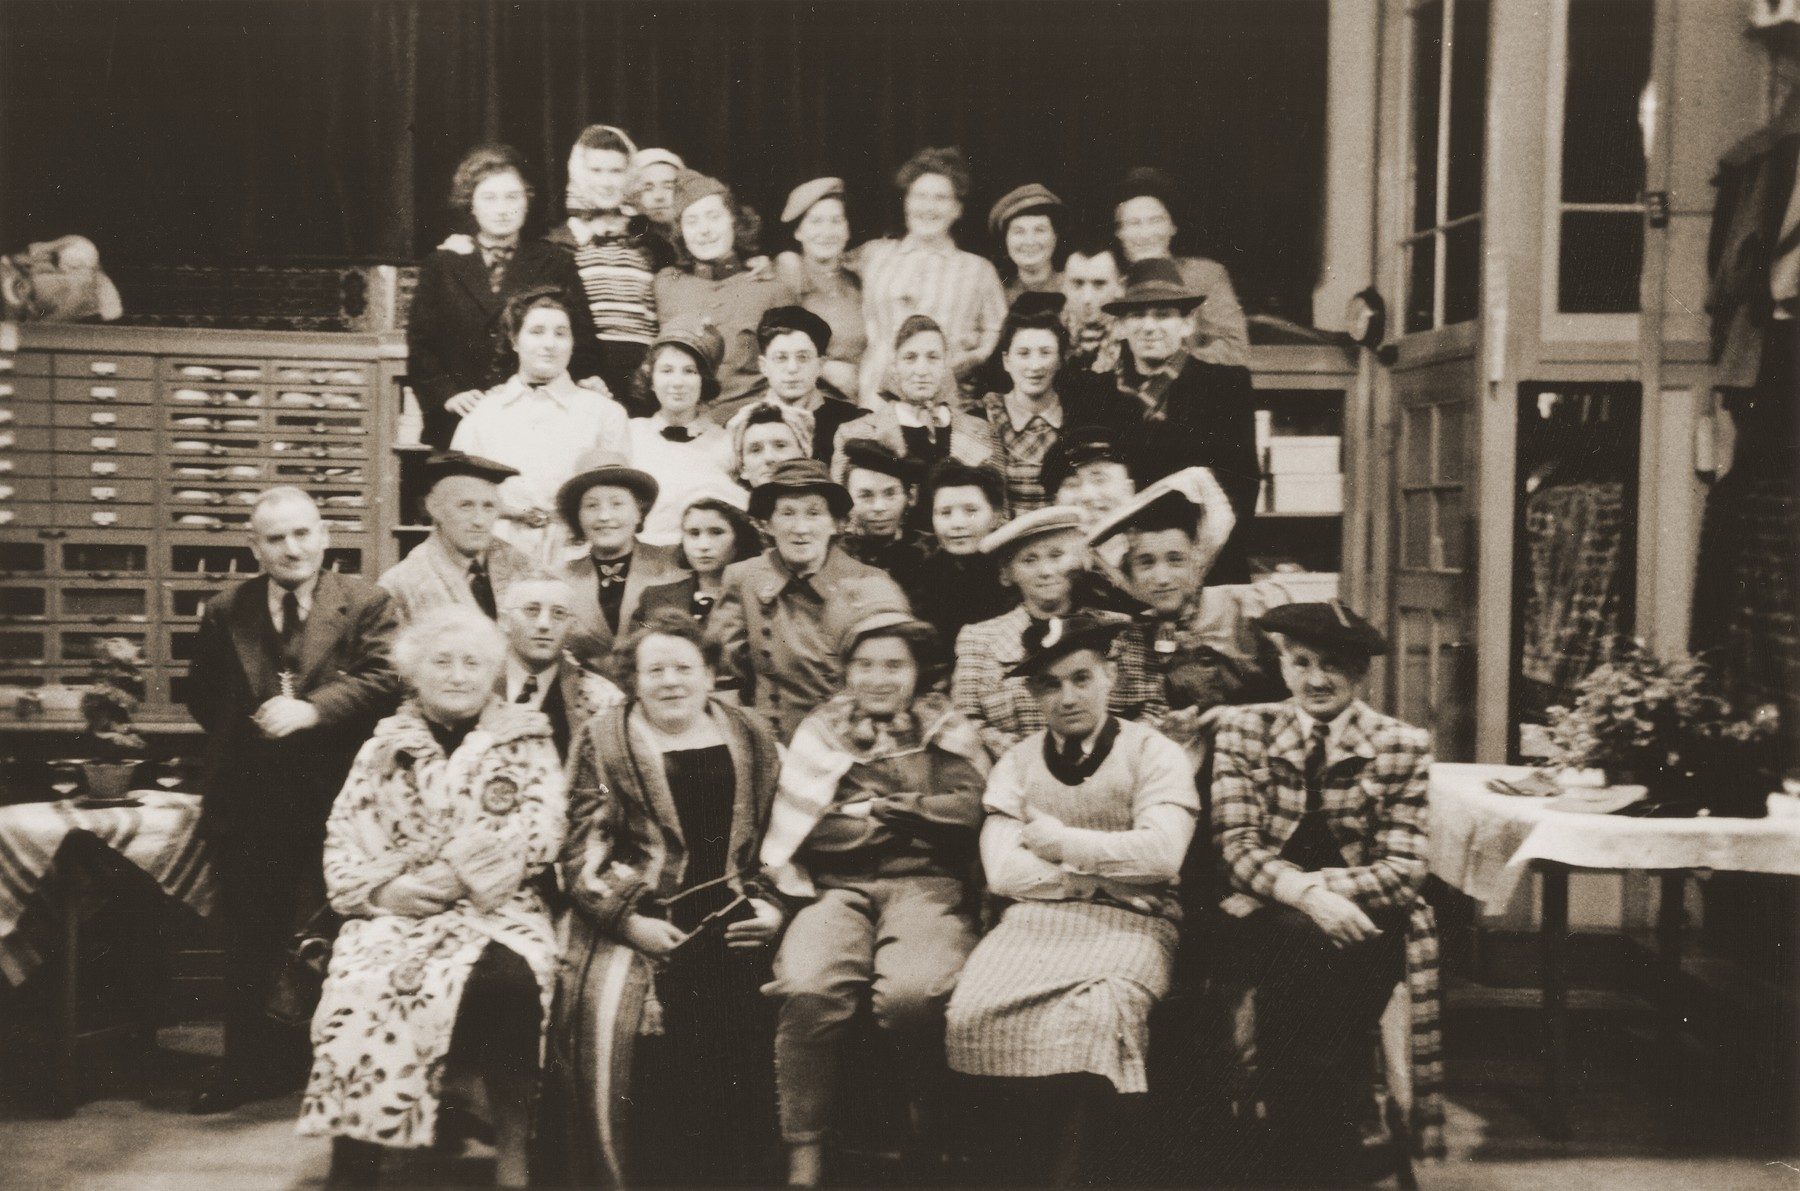 Group portrait of members of the Jewish community of Eibergen, who are in attendance at a New Year's Eve costume party at the Zion fabric store.